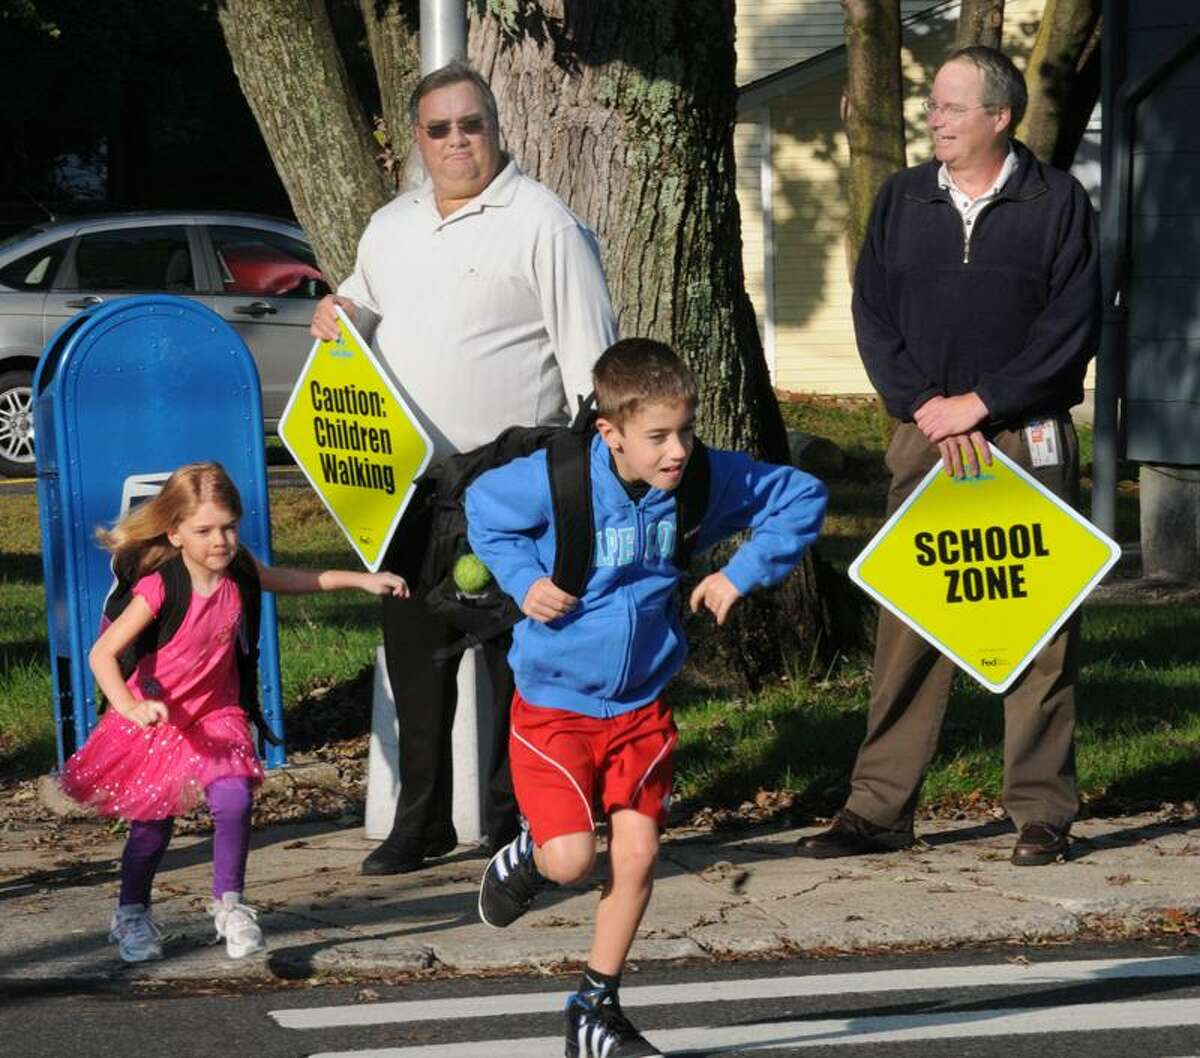 Skyler Kinsella, left, and brother Jimmy Kinsella cross the street on their way to Anna LoPresti School in Seymour. Helping them to cross safely are Mike Shannon, left, and Paul Sobolewski of FedEx. This is part of International Walk to School Day. Melanie Stengel/Register